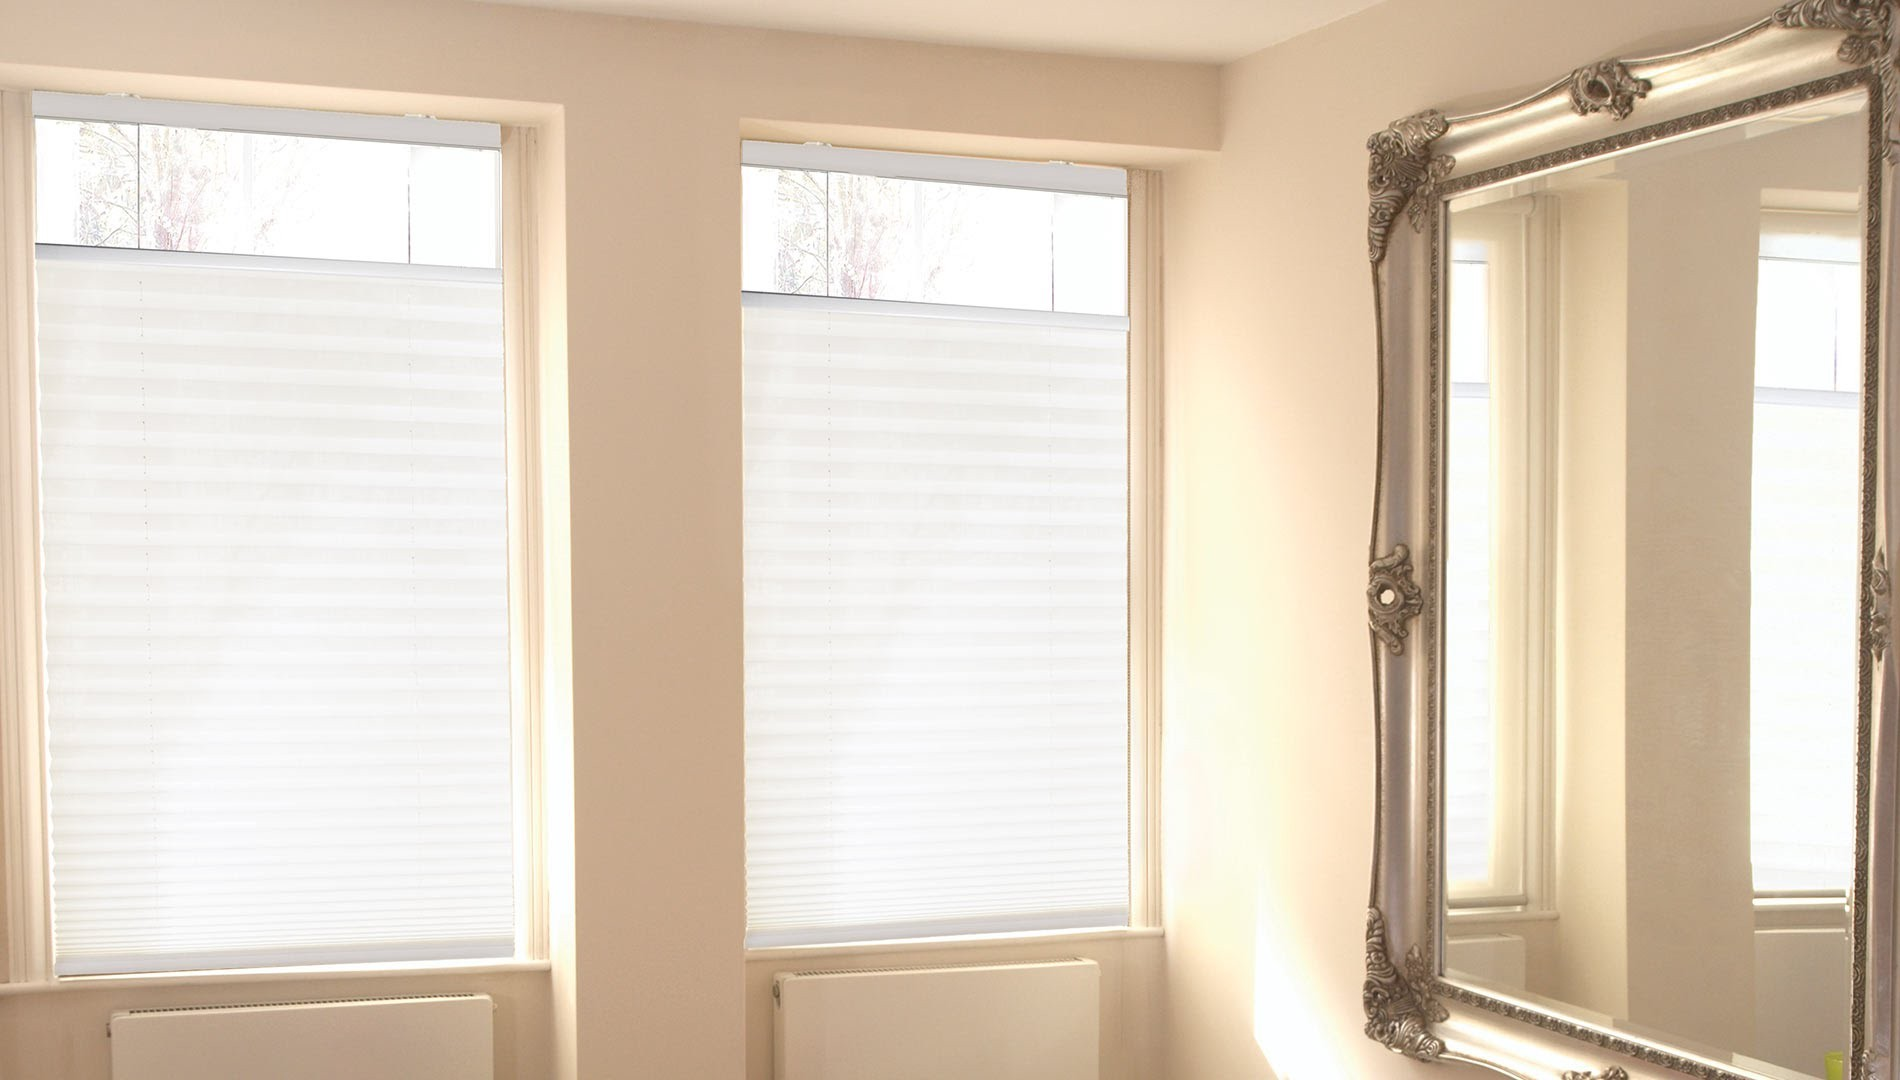 Arch Window Blinds That Open And Close